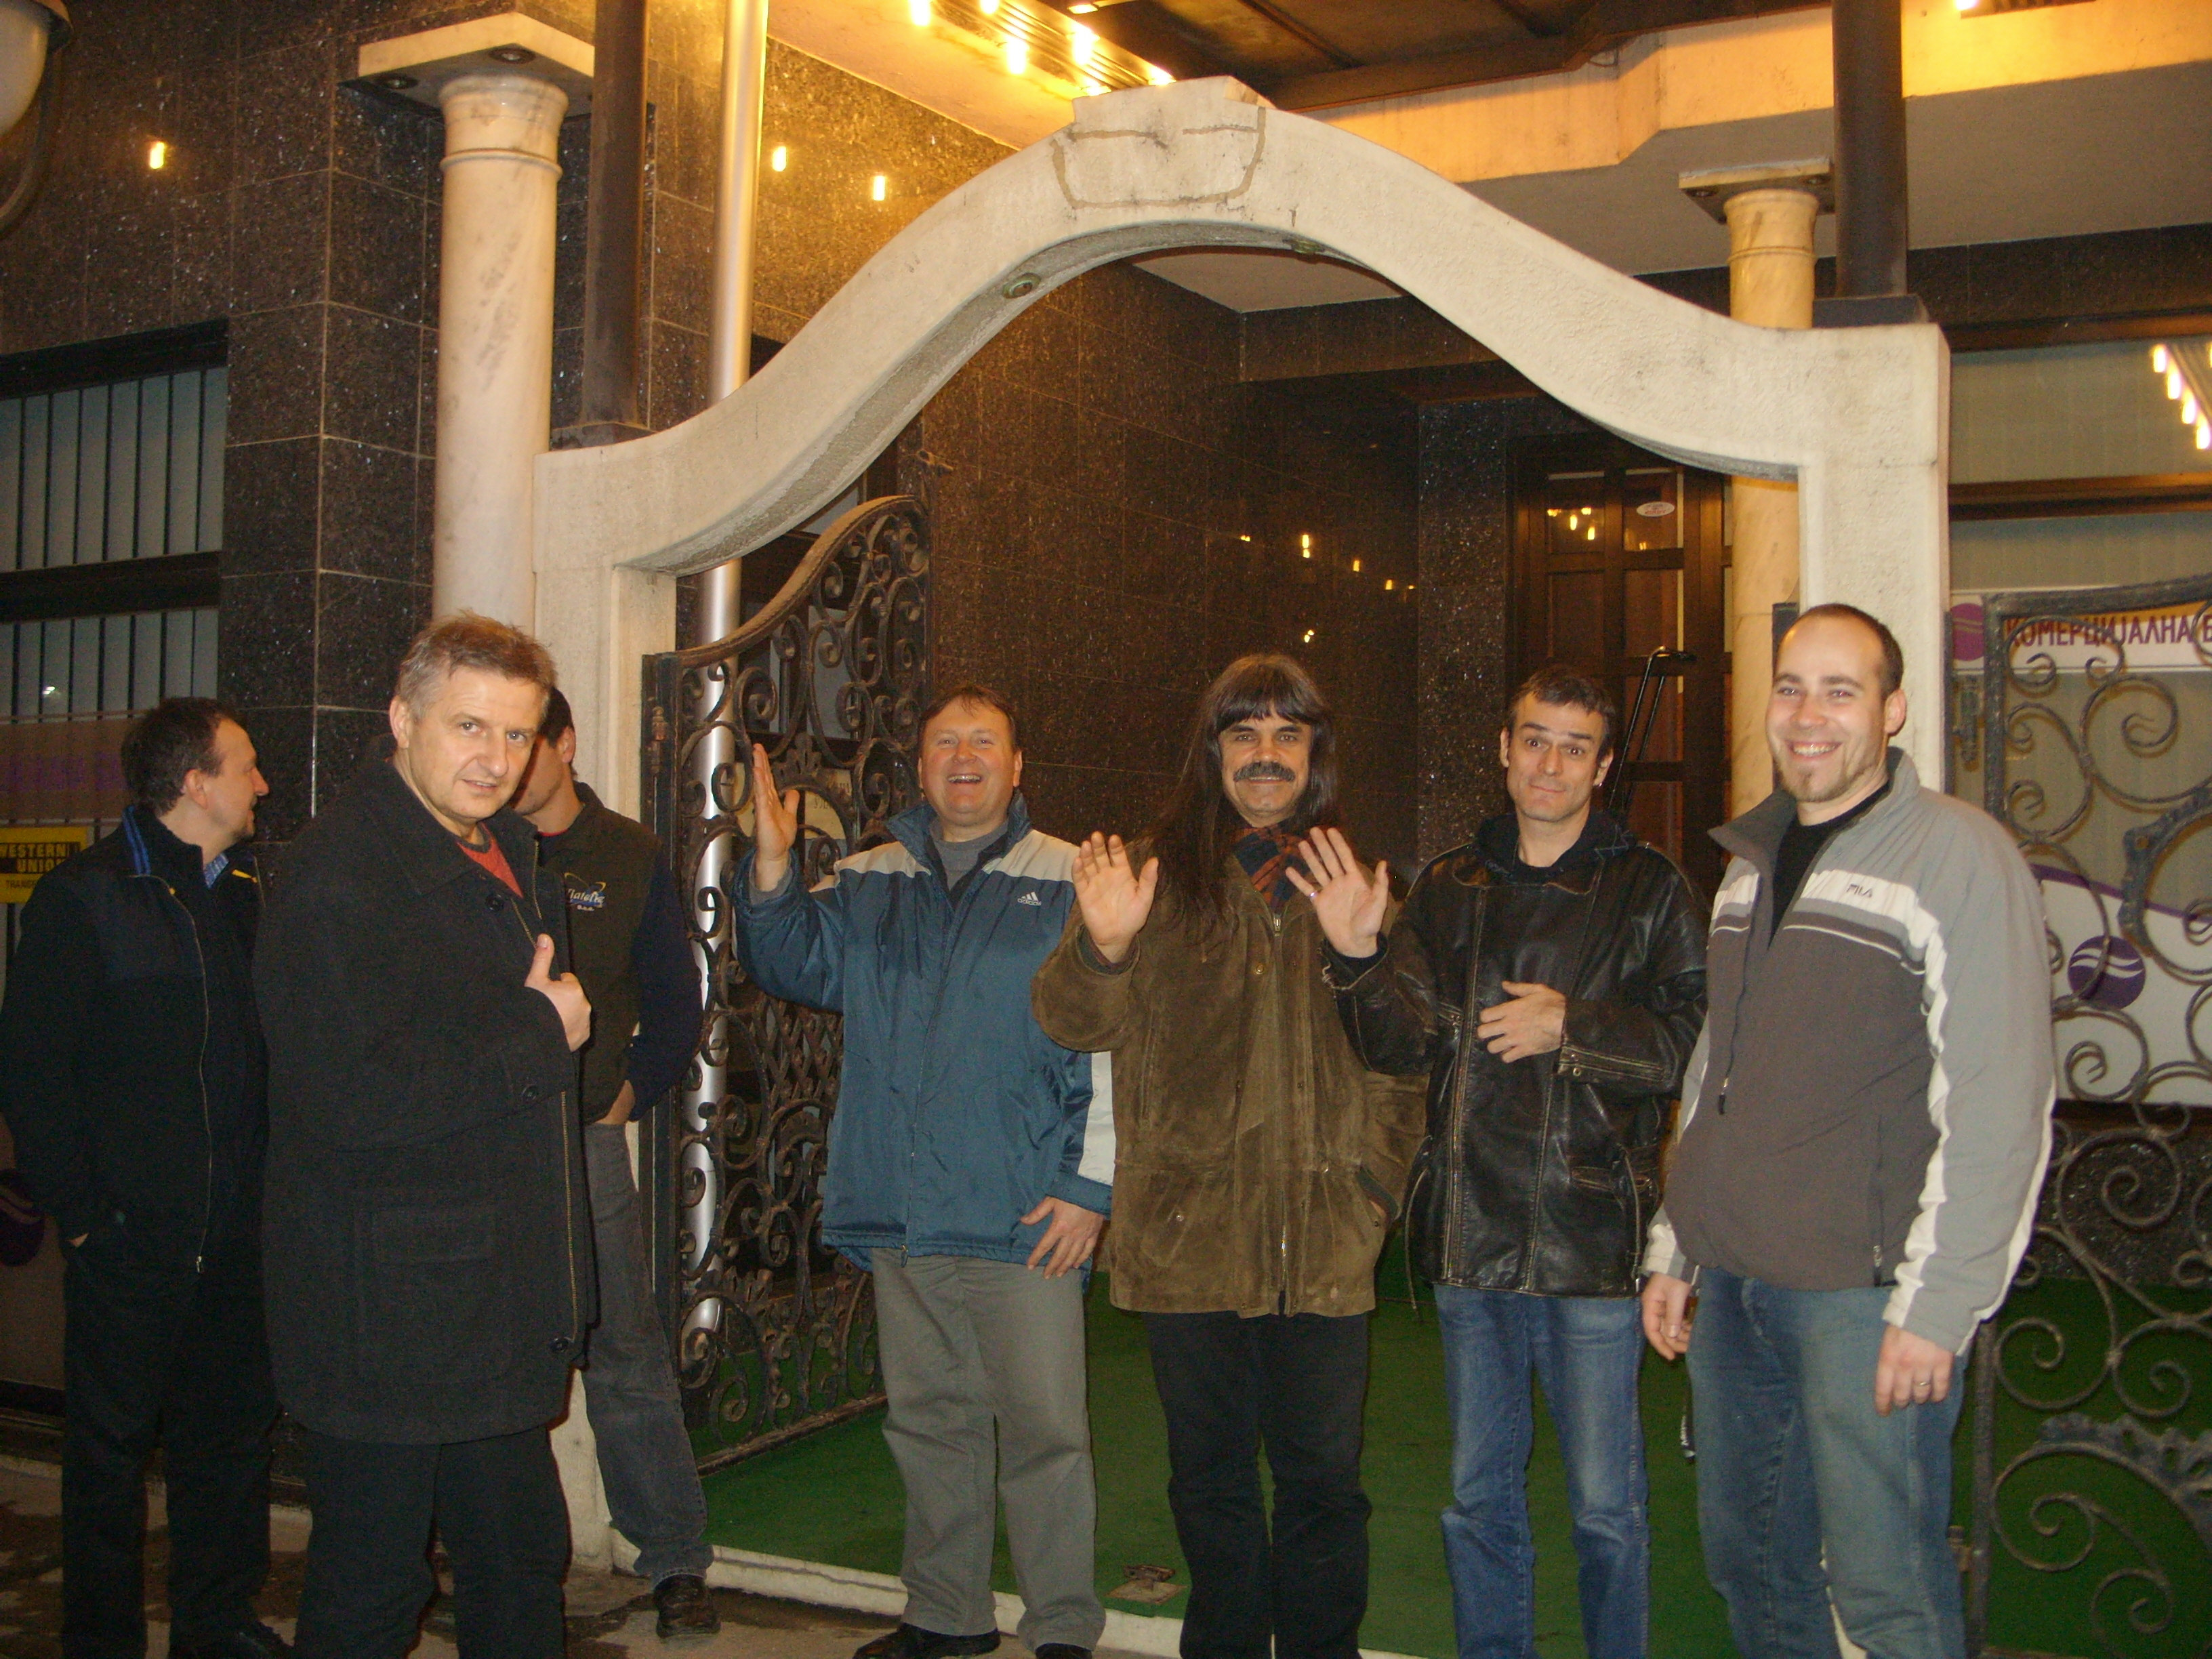 Group members with the staff in front of the Hotel